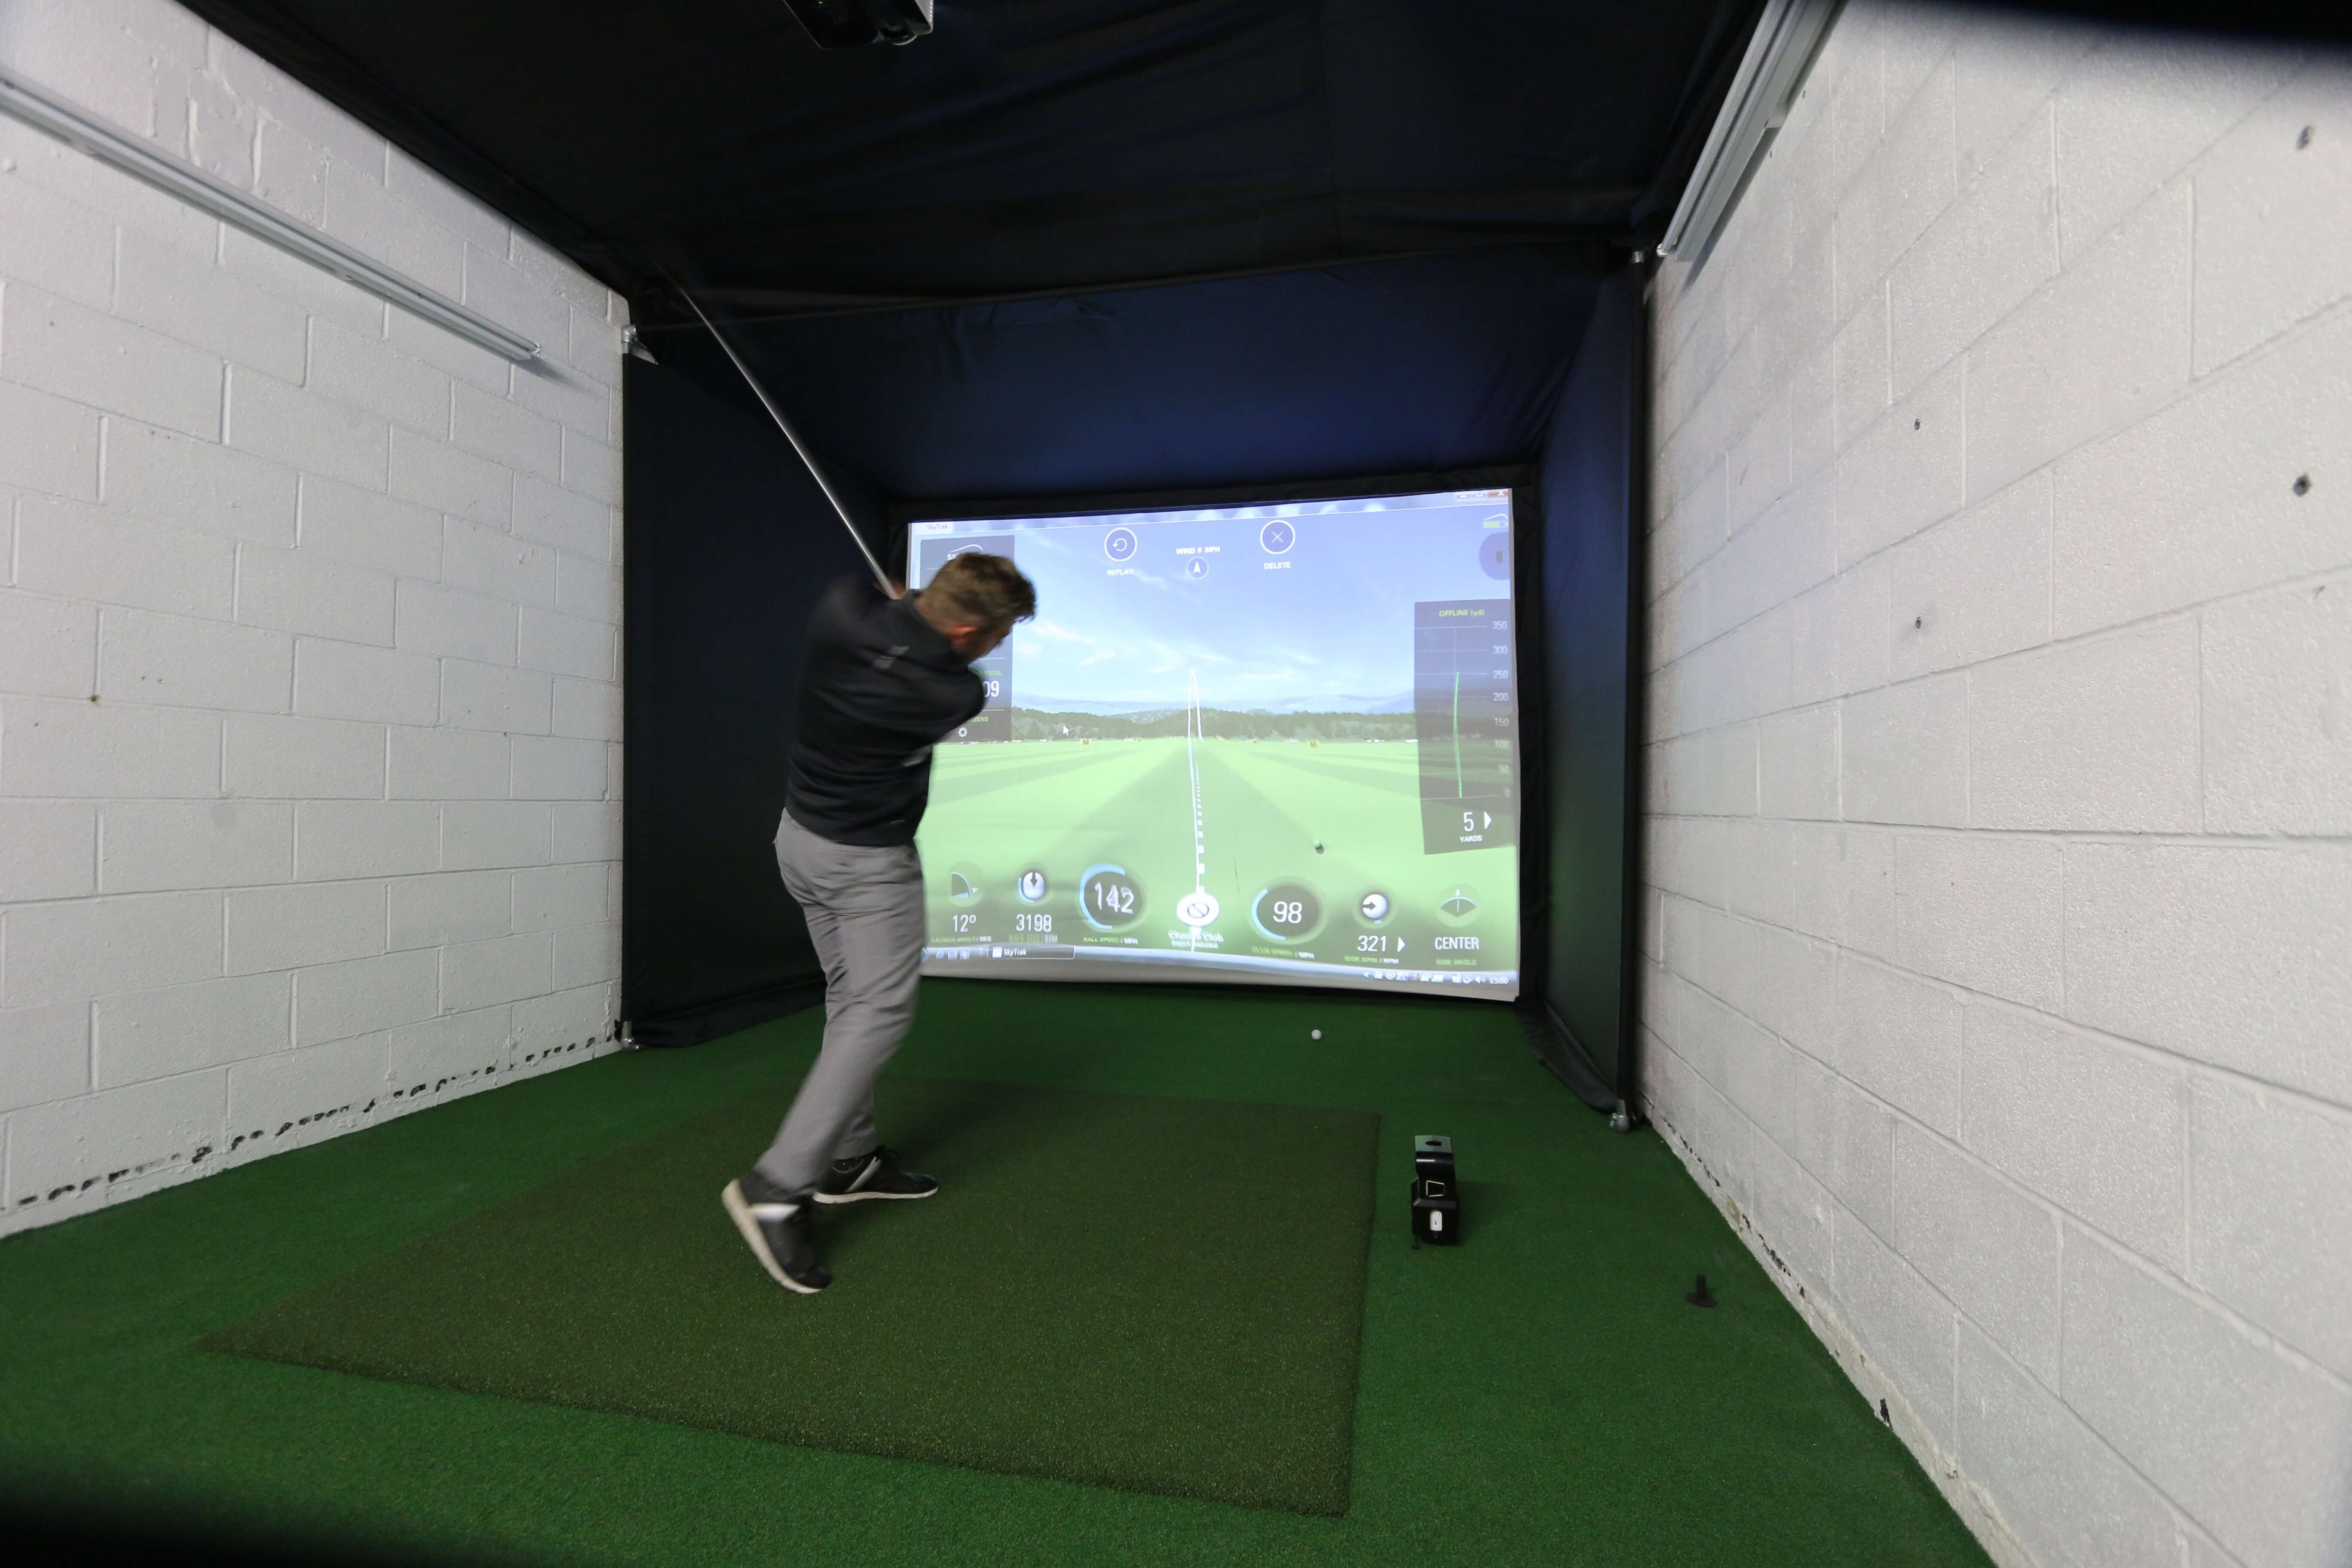 Skytrak Amp Home Golf Simulator Enclosure Golf Swing Systems